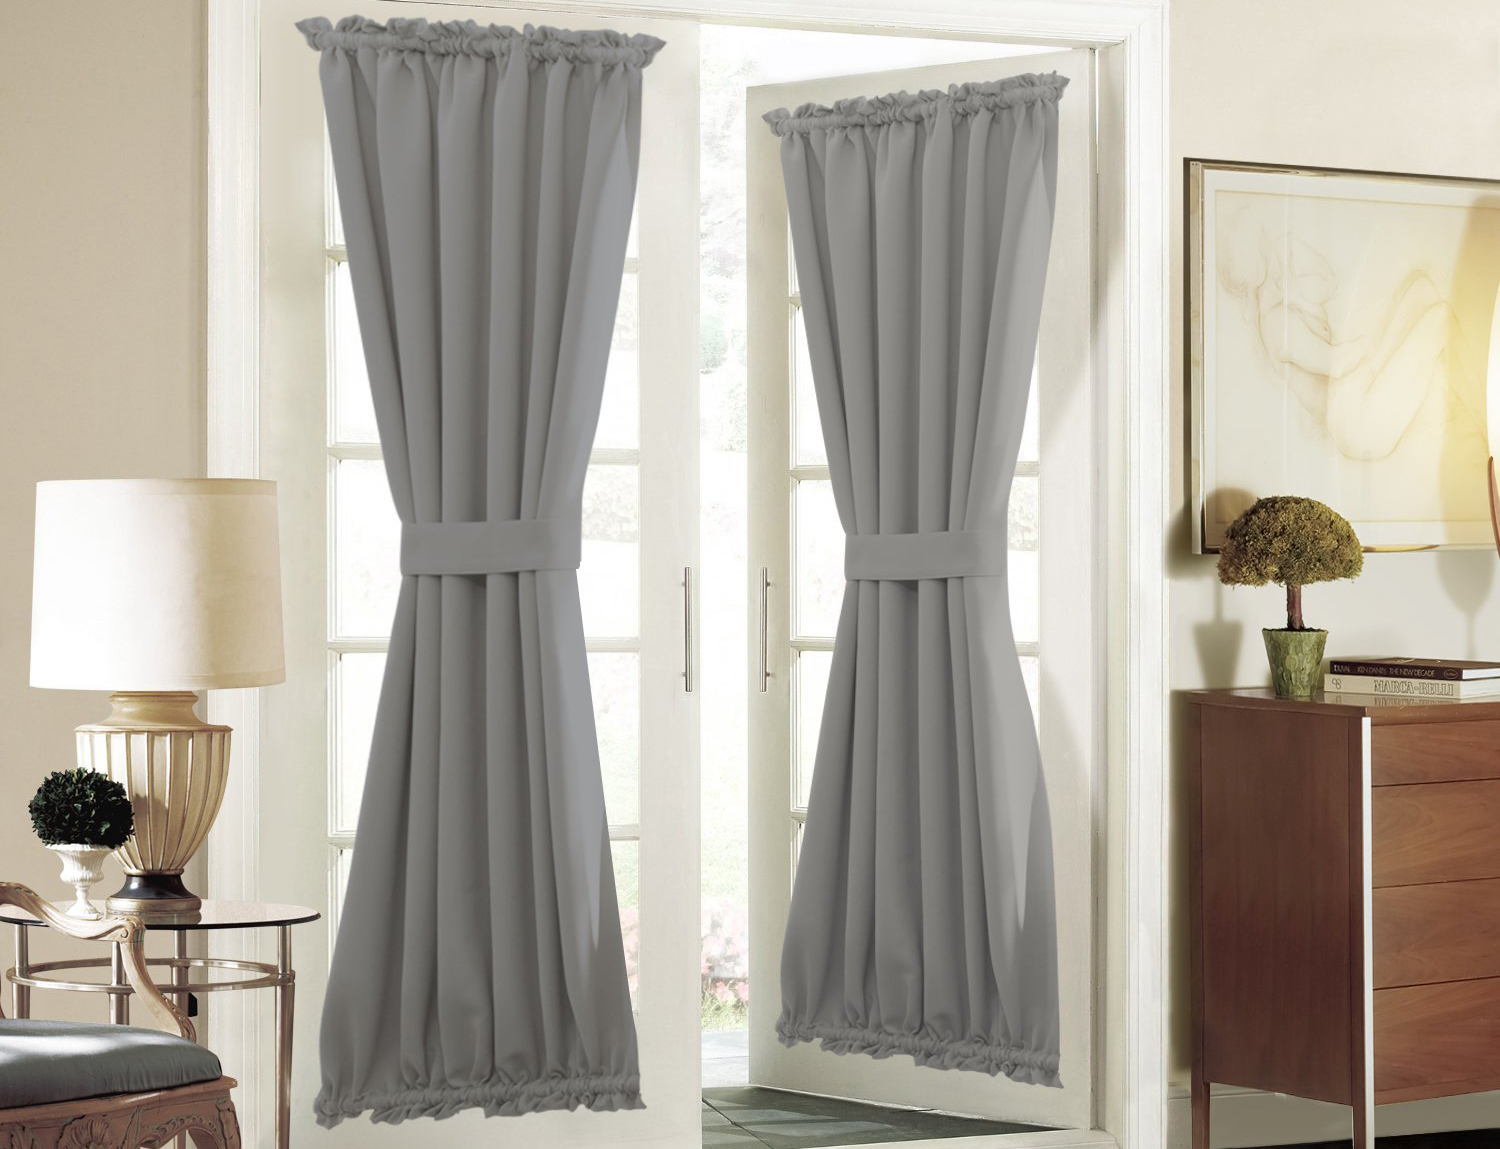 Heavy Thermal Curtains The Best Noise Reducing Curtains 2019 Simple Way To A Quiet Home